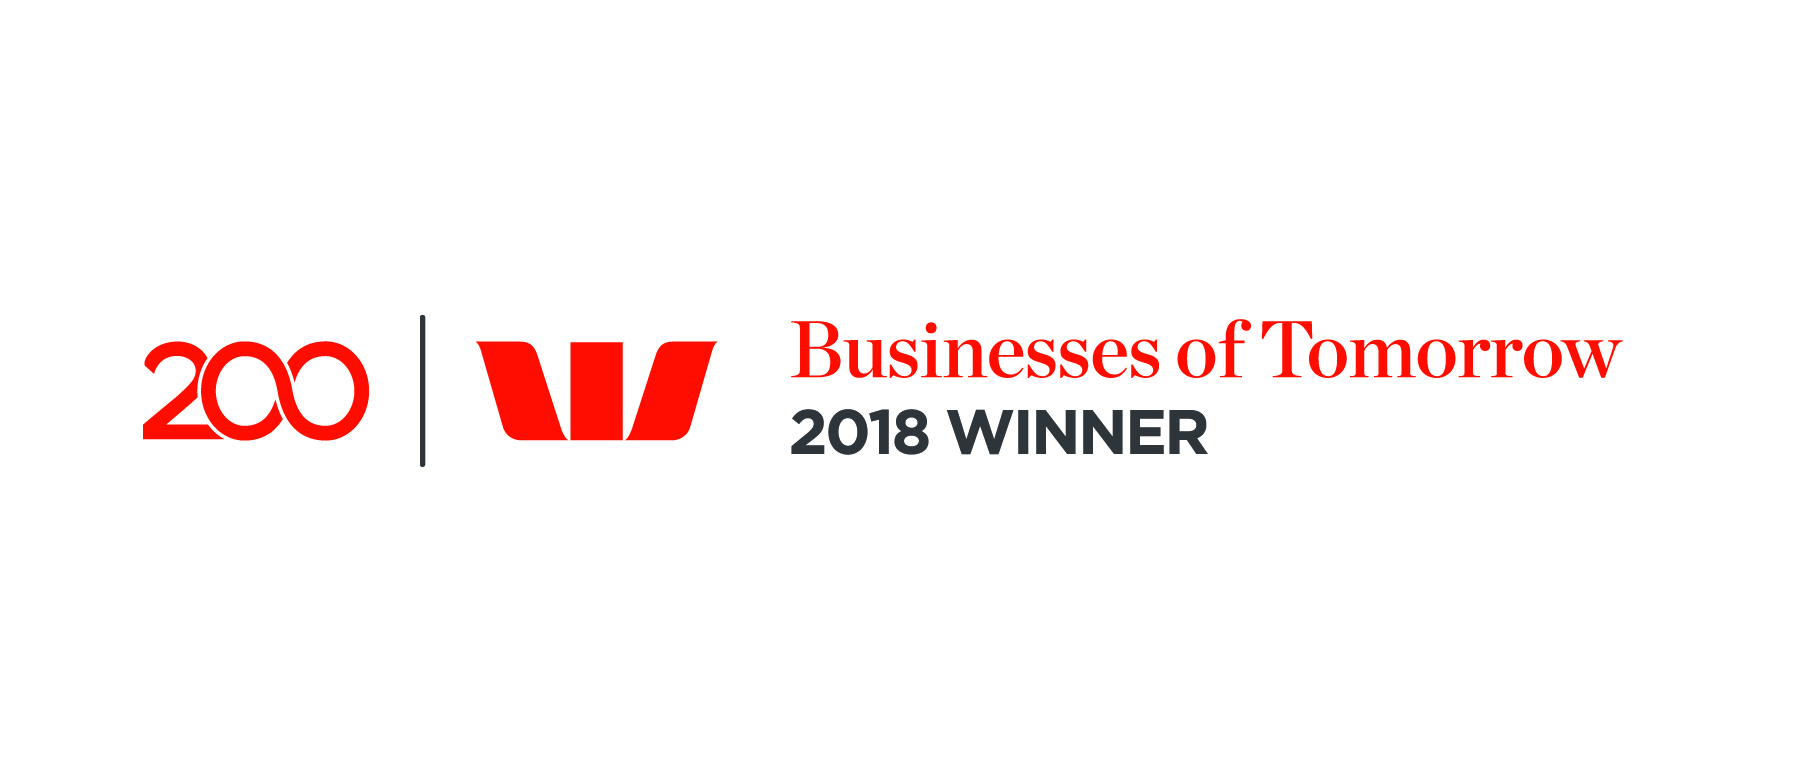 Businesses of Tomorrow 2018 Winner Colour_3